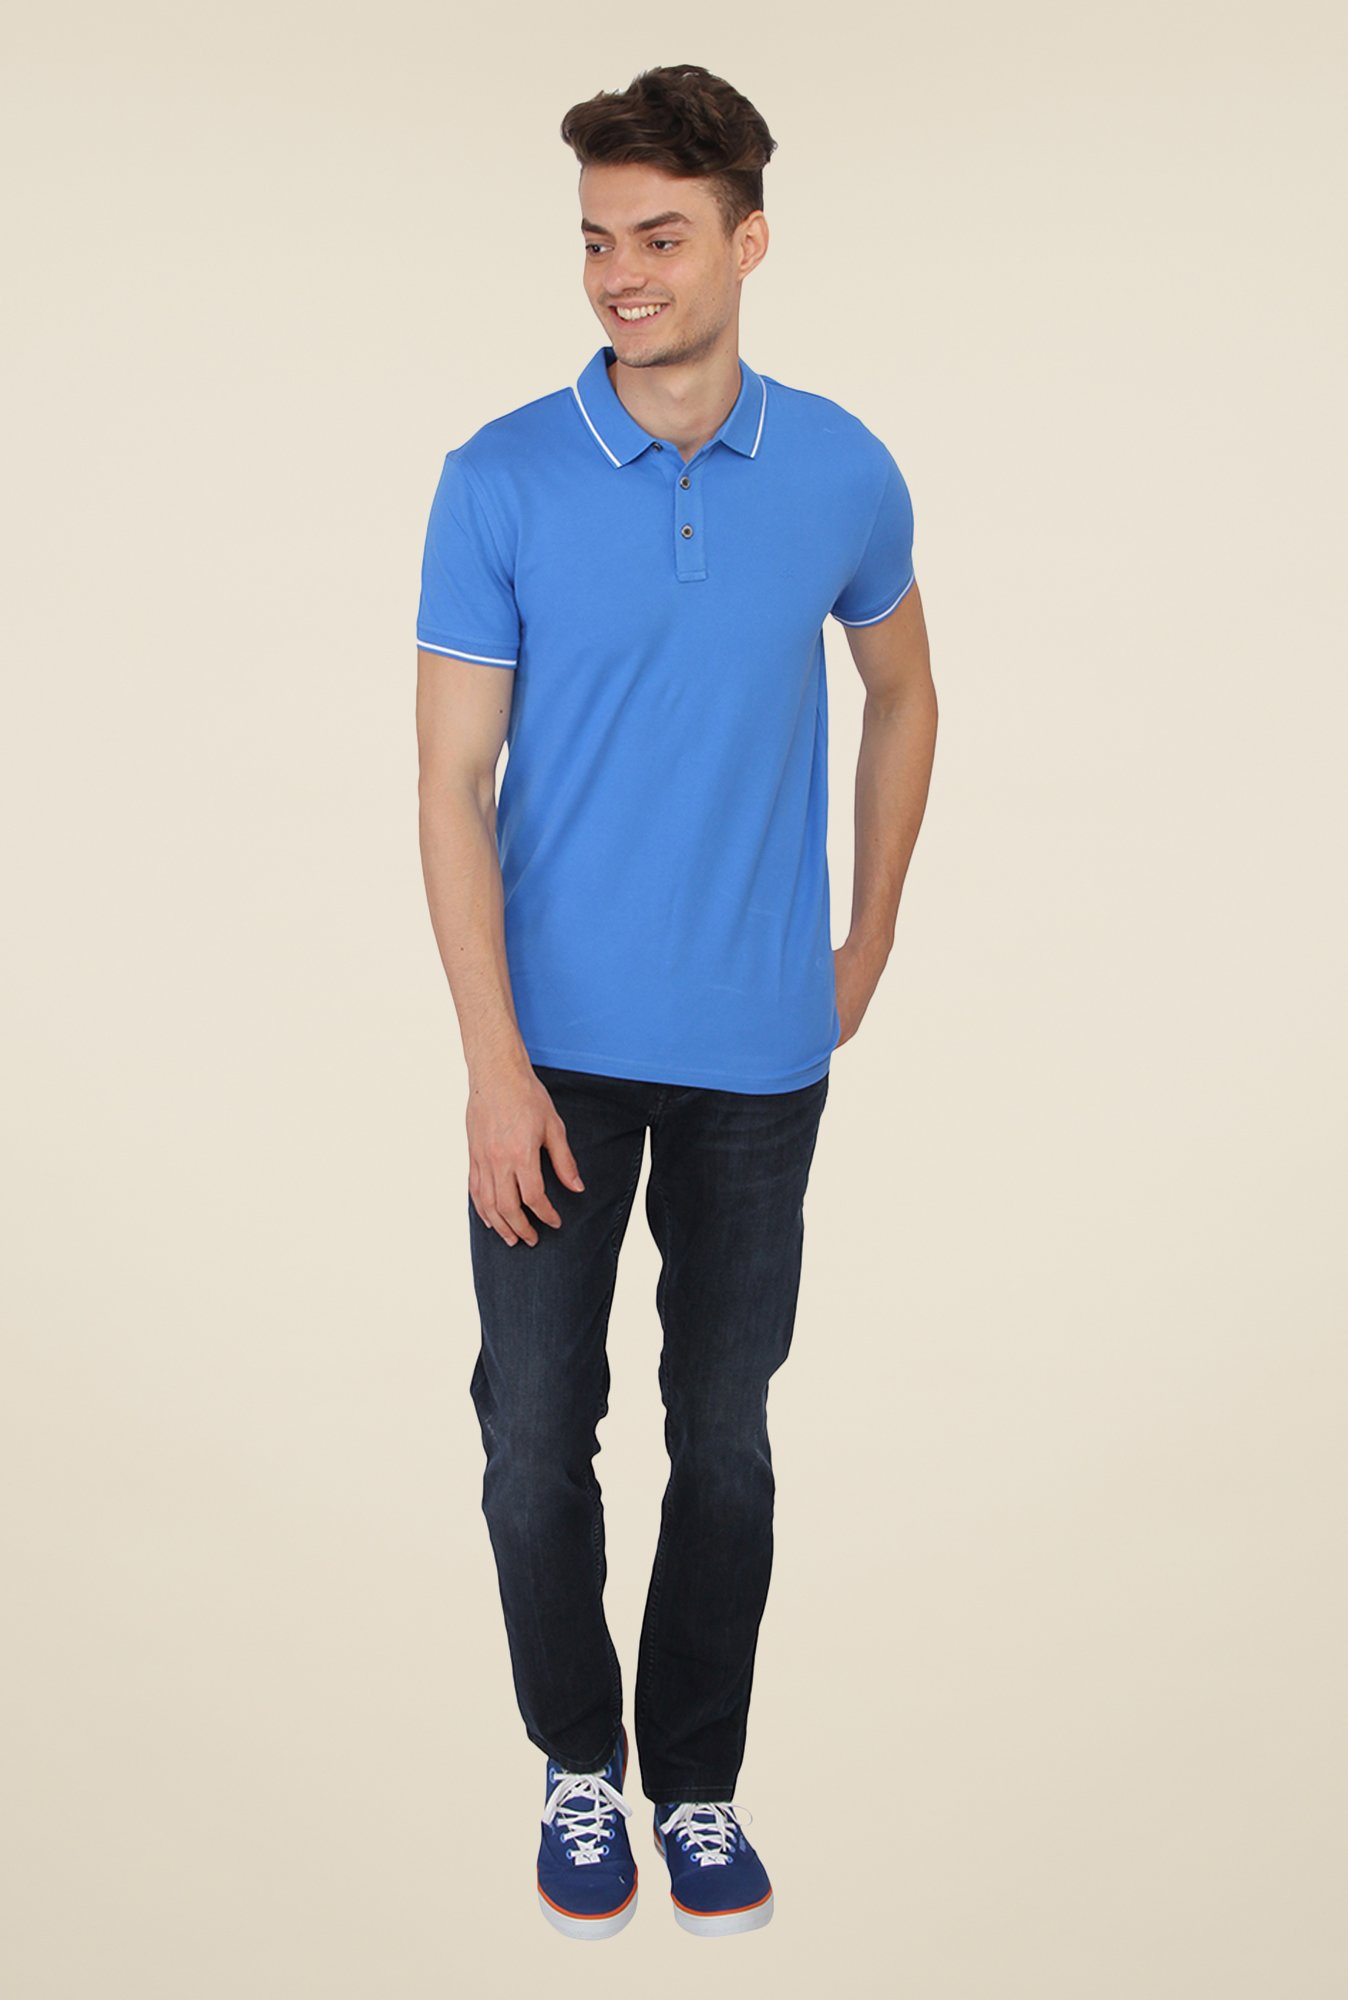 Calvin Klein Blue Solid Polo T-Shirt